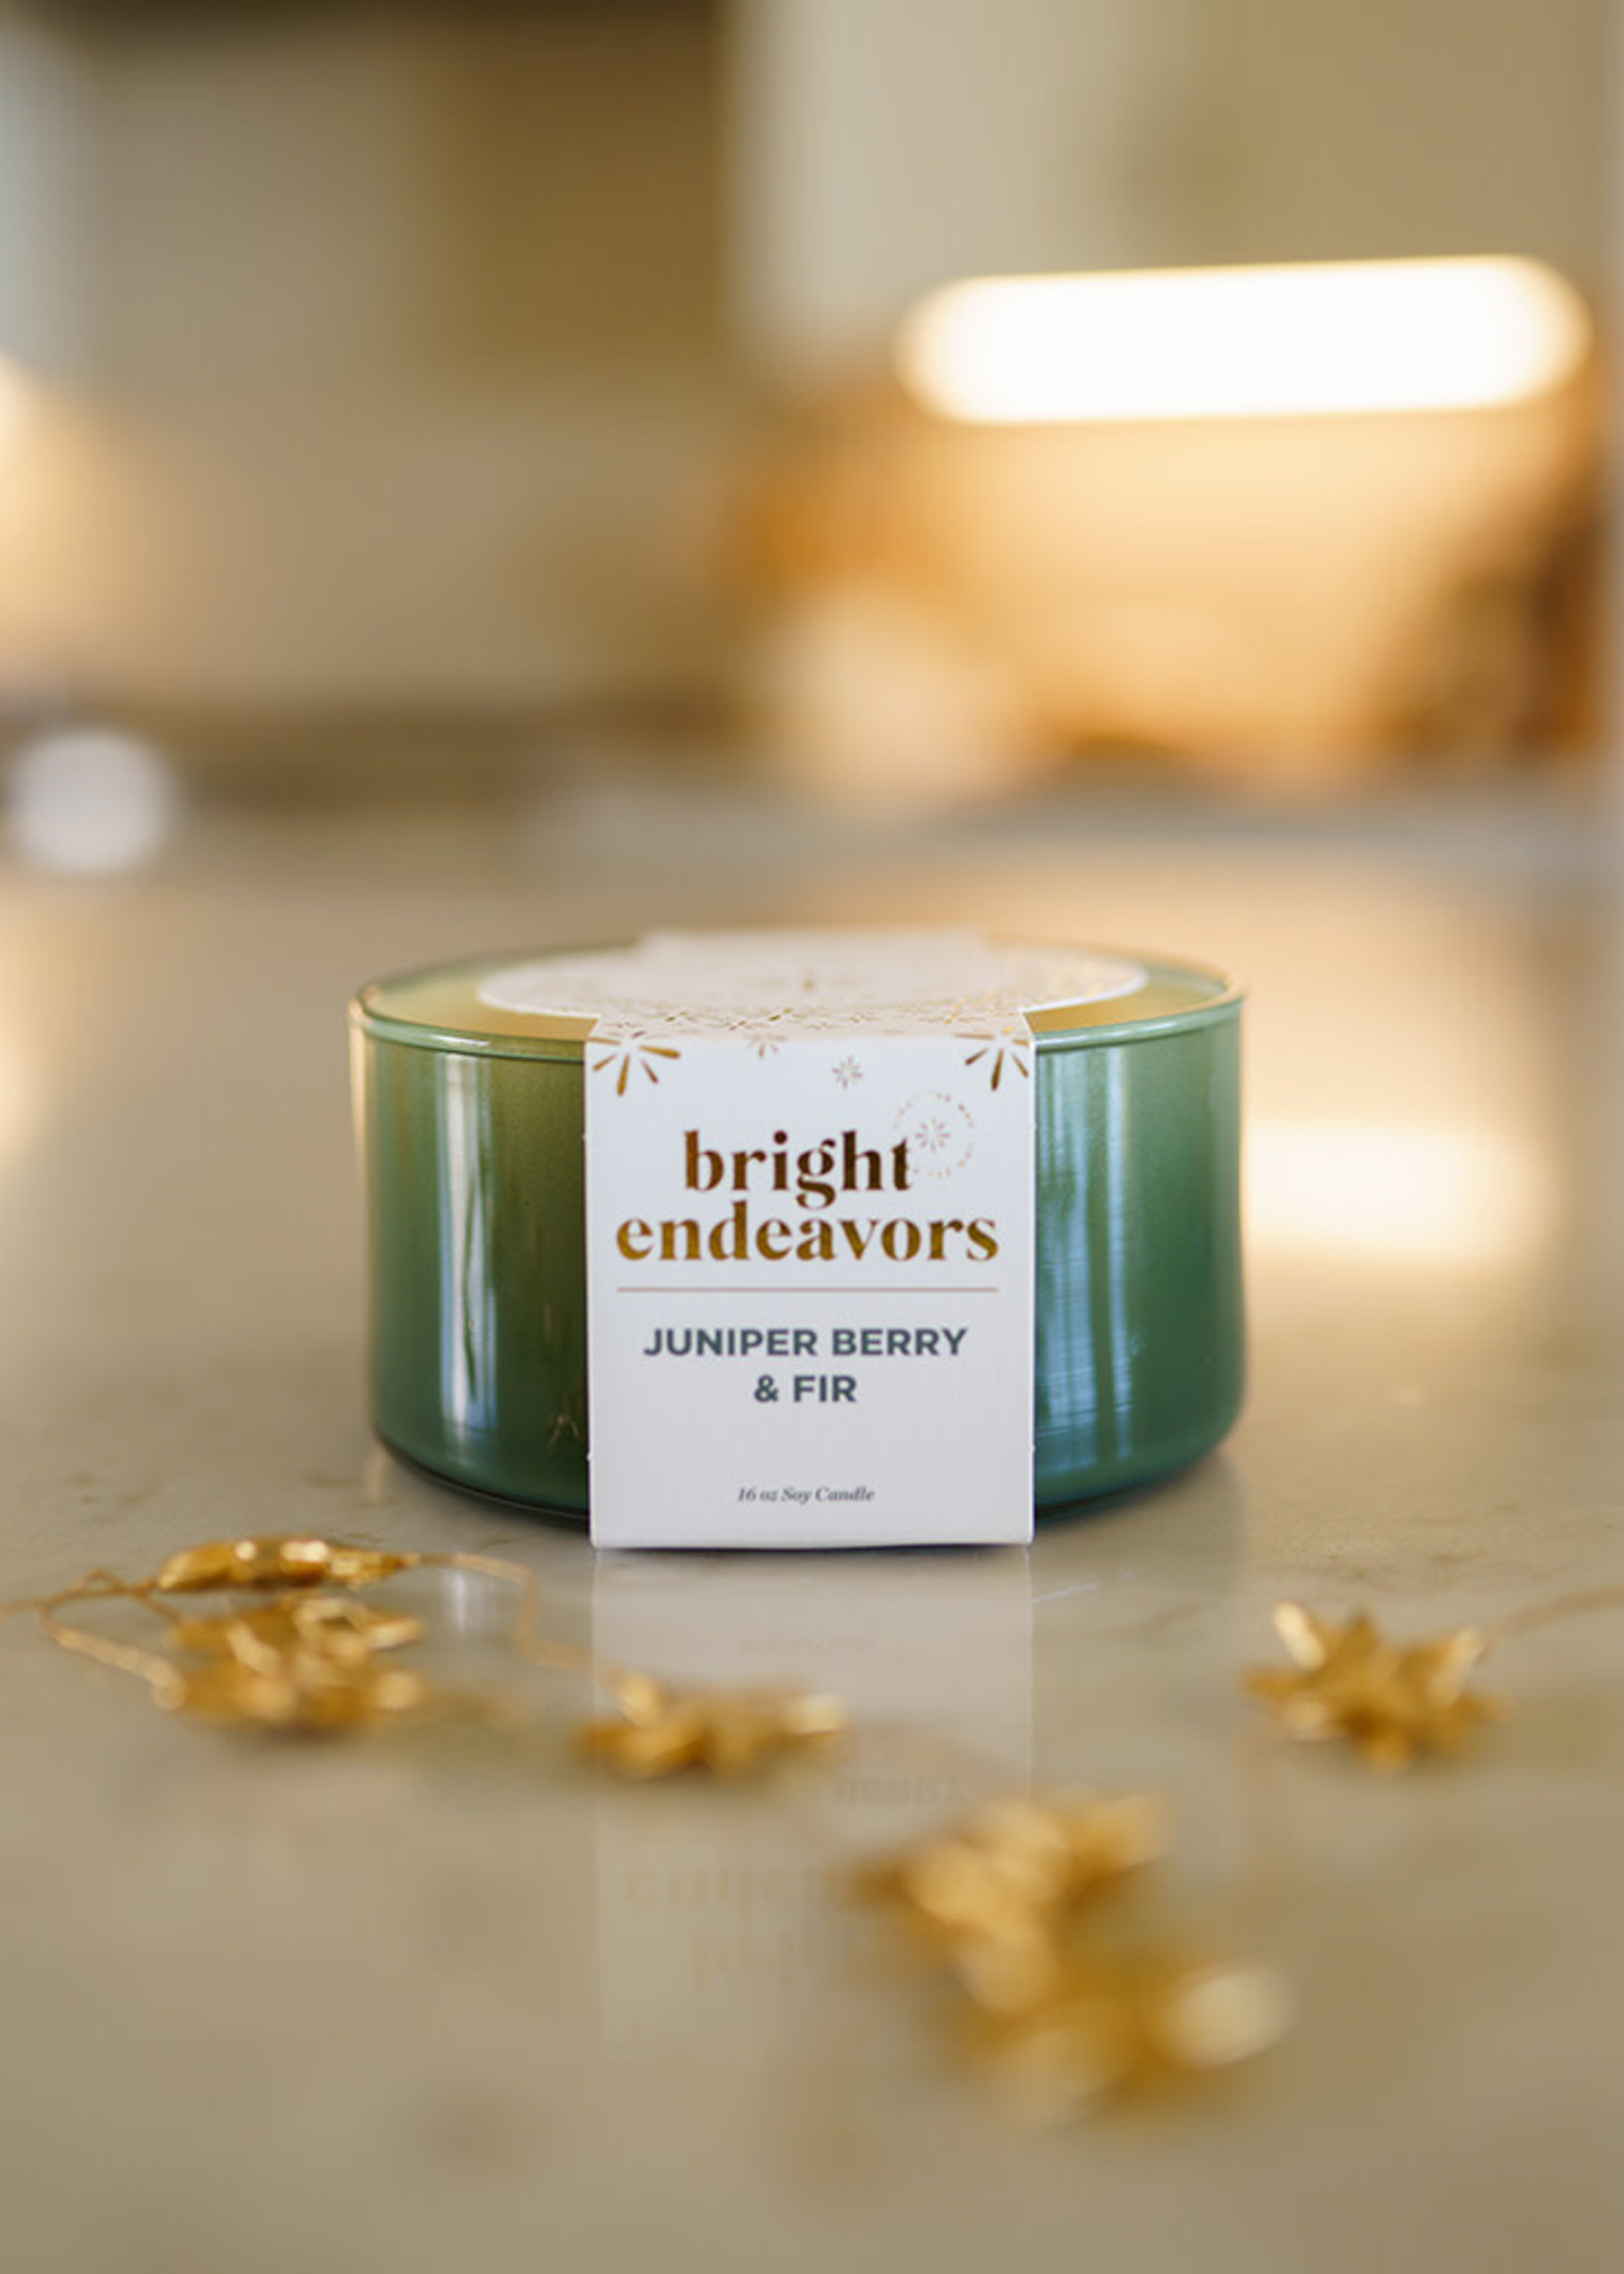 Bright Endeavors Juniper Berry & Fir Soy Candle